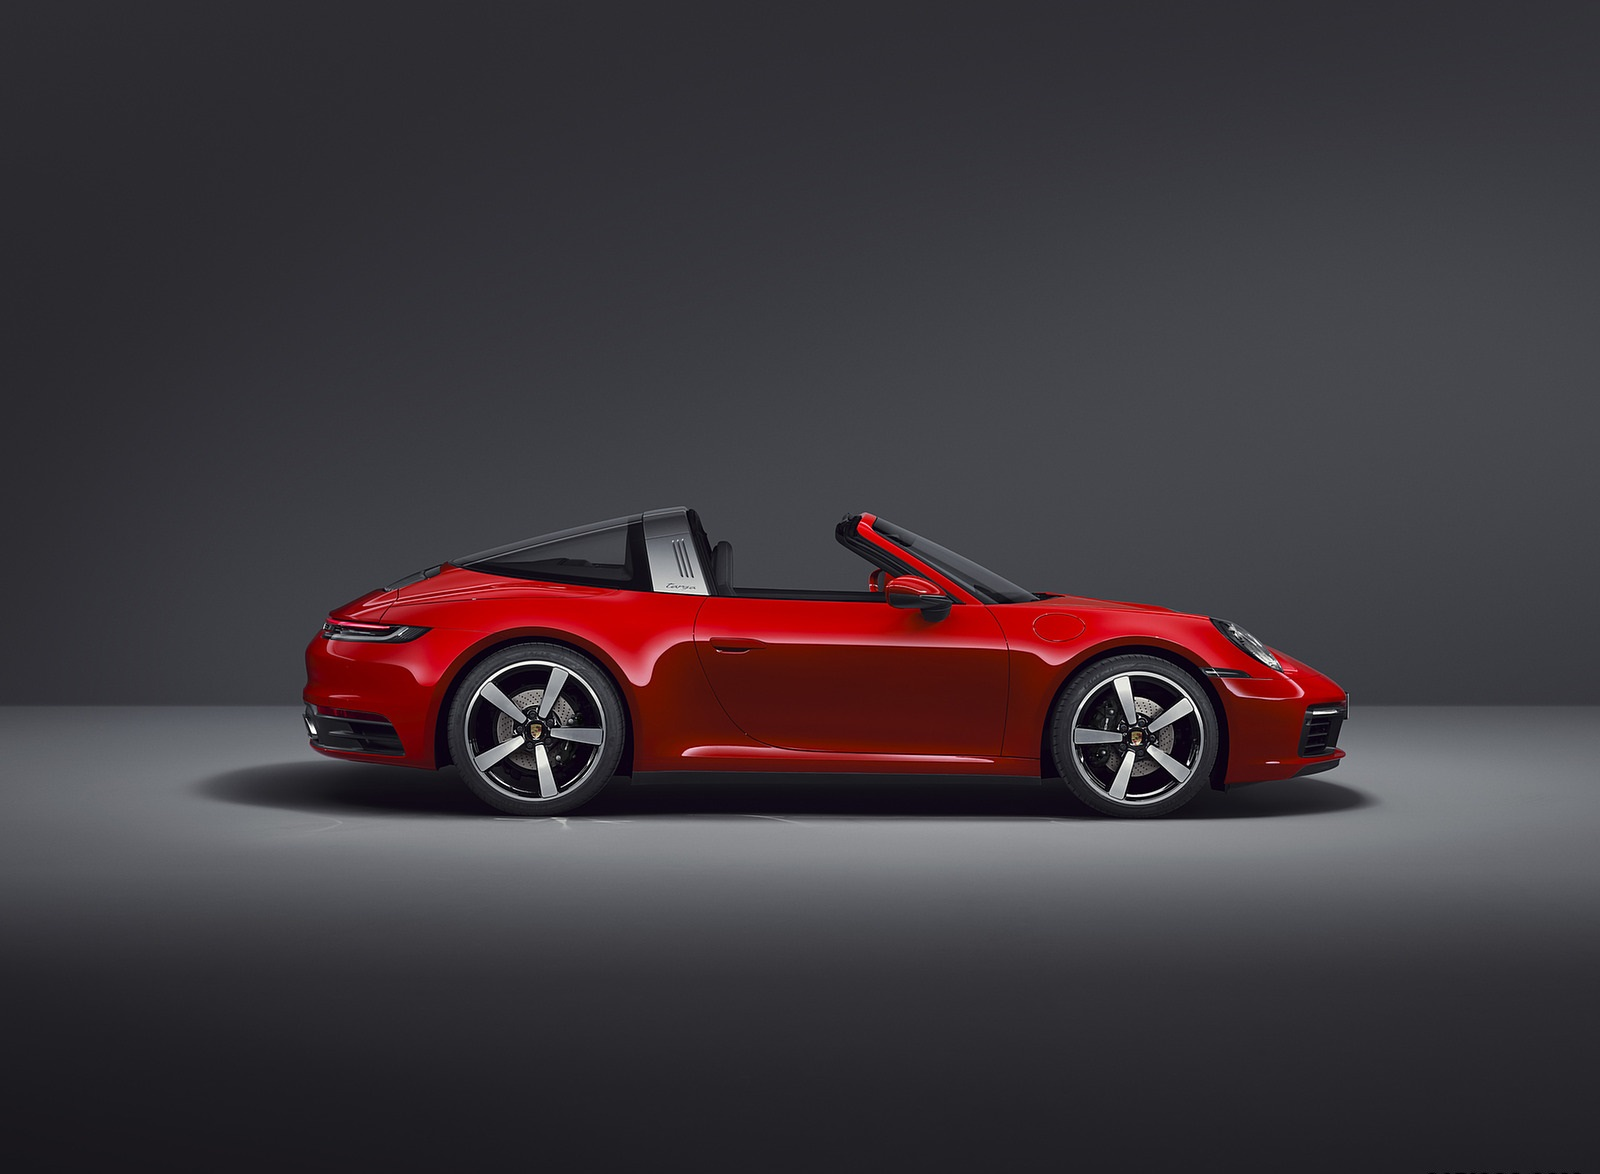 2021 Porsche 911 Targa 4 Side Wallpapers (5)